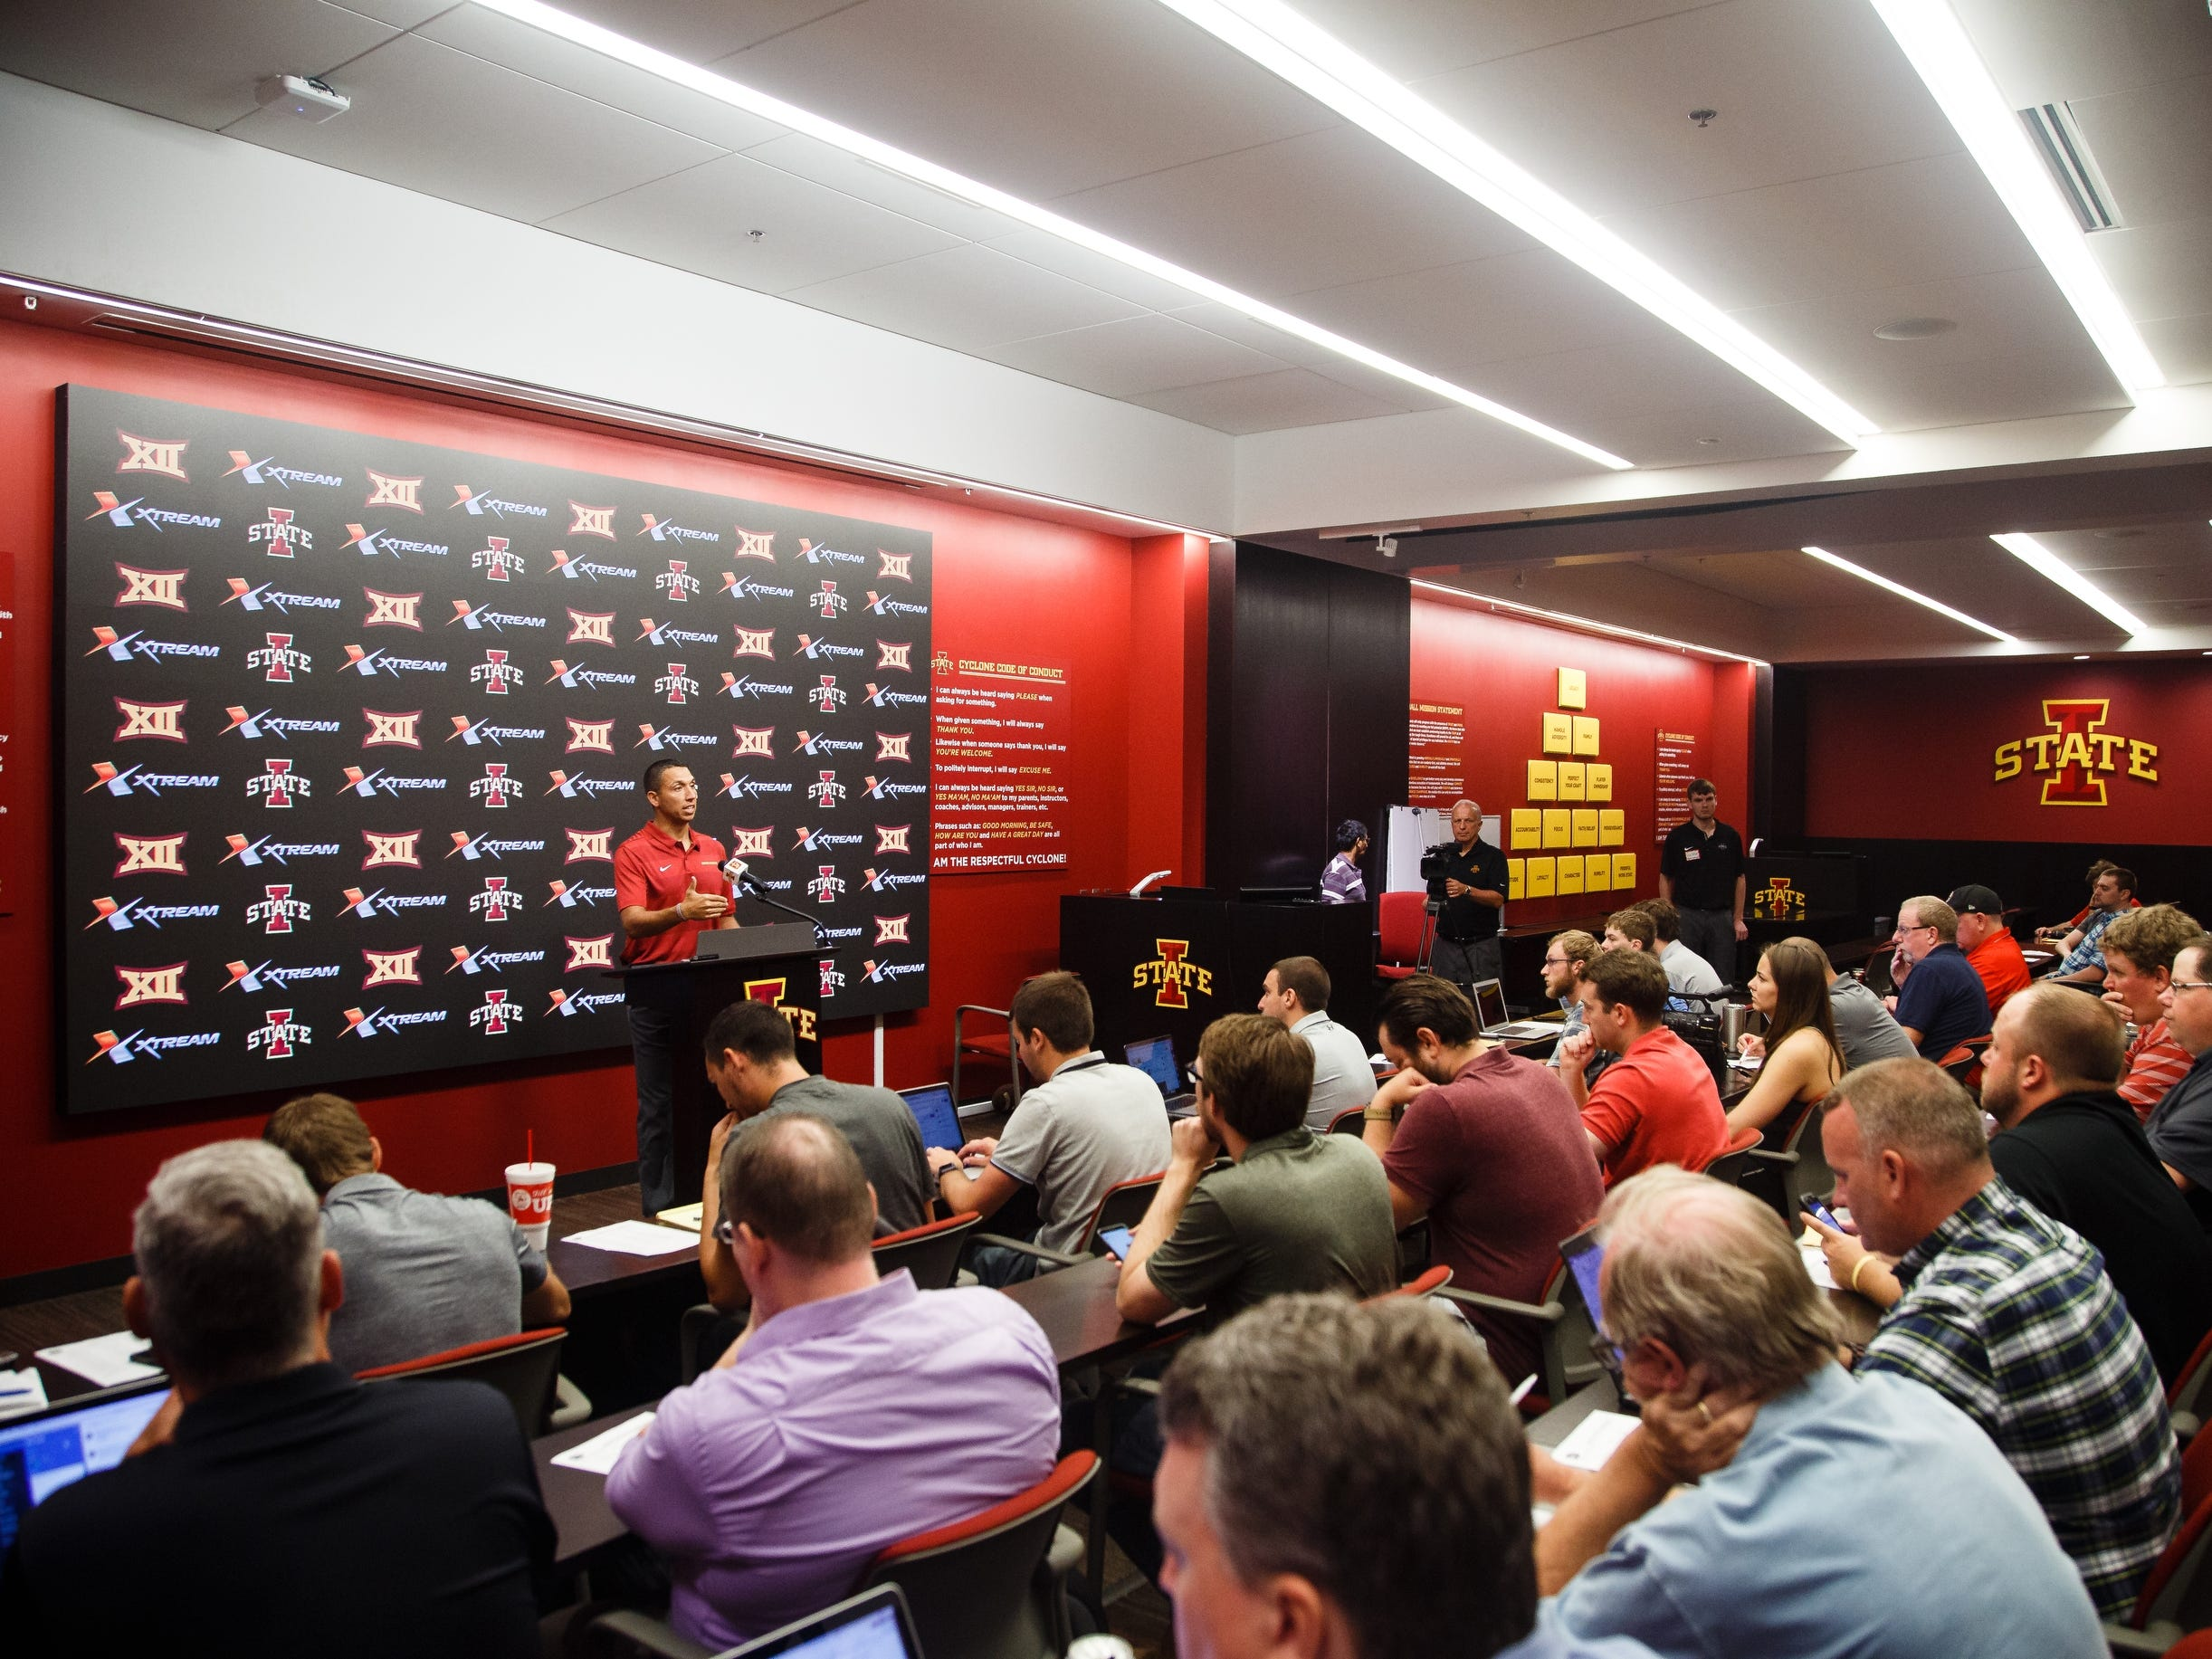 Iowa State football head coach Matt Campbell talks to members of the press during media day on Tuesday, Aug. 7, 2018 in Ames.